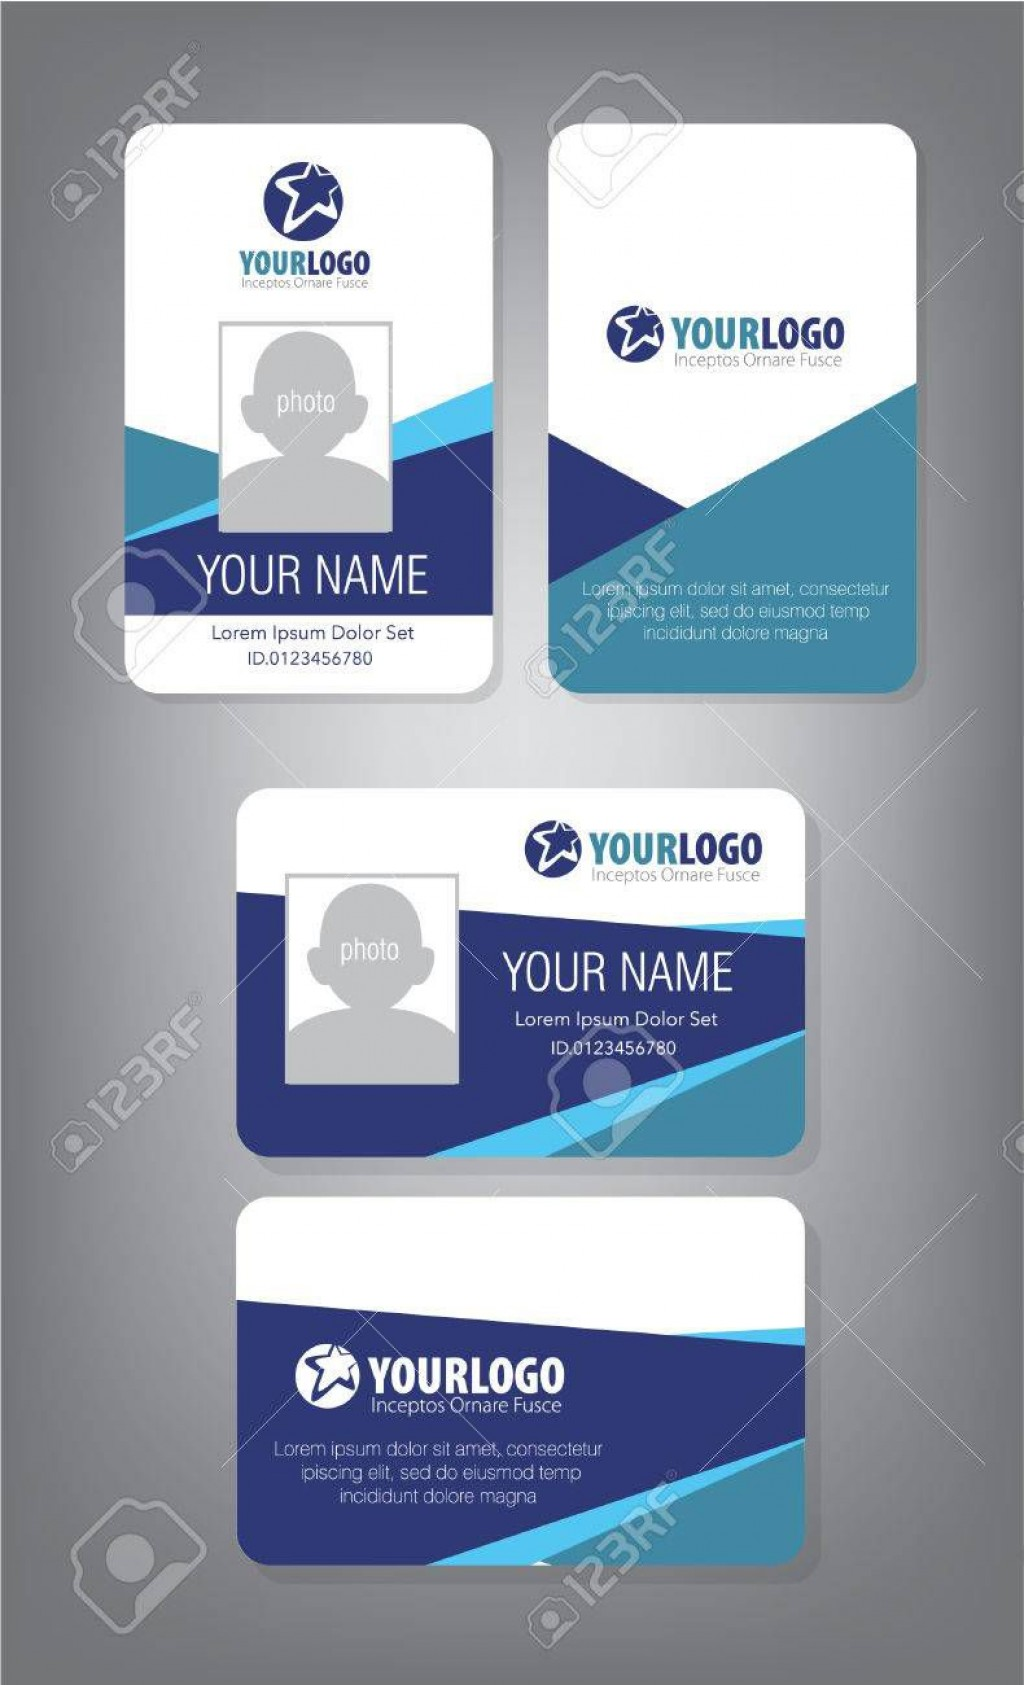 002 Impressive Employee Id Card Template Inspiration  Free Download Psd WordLarge